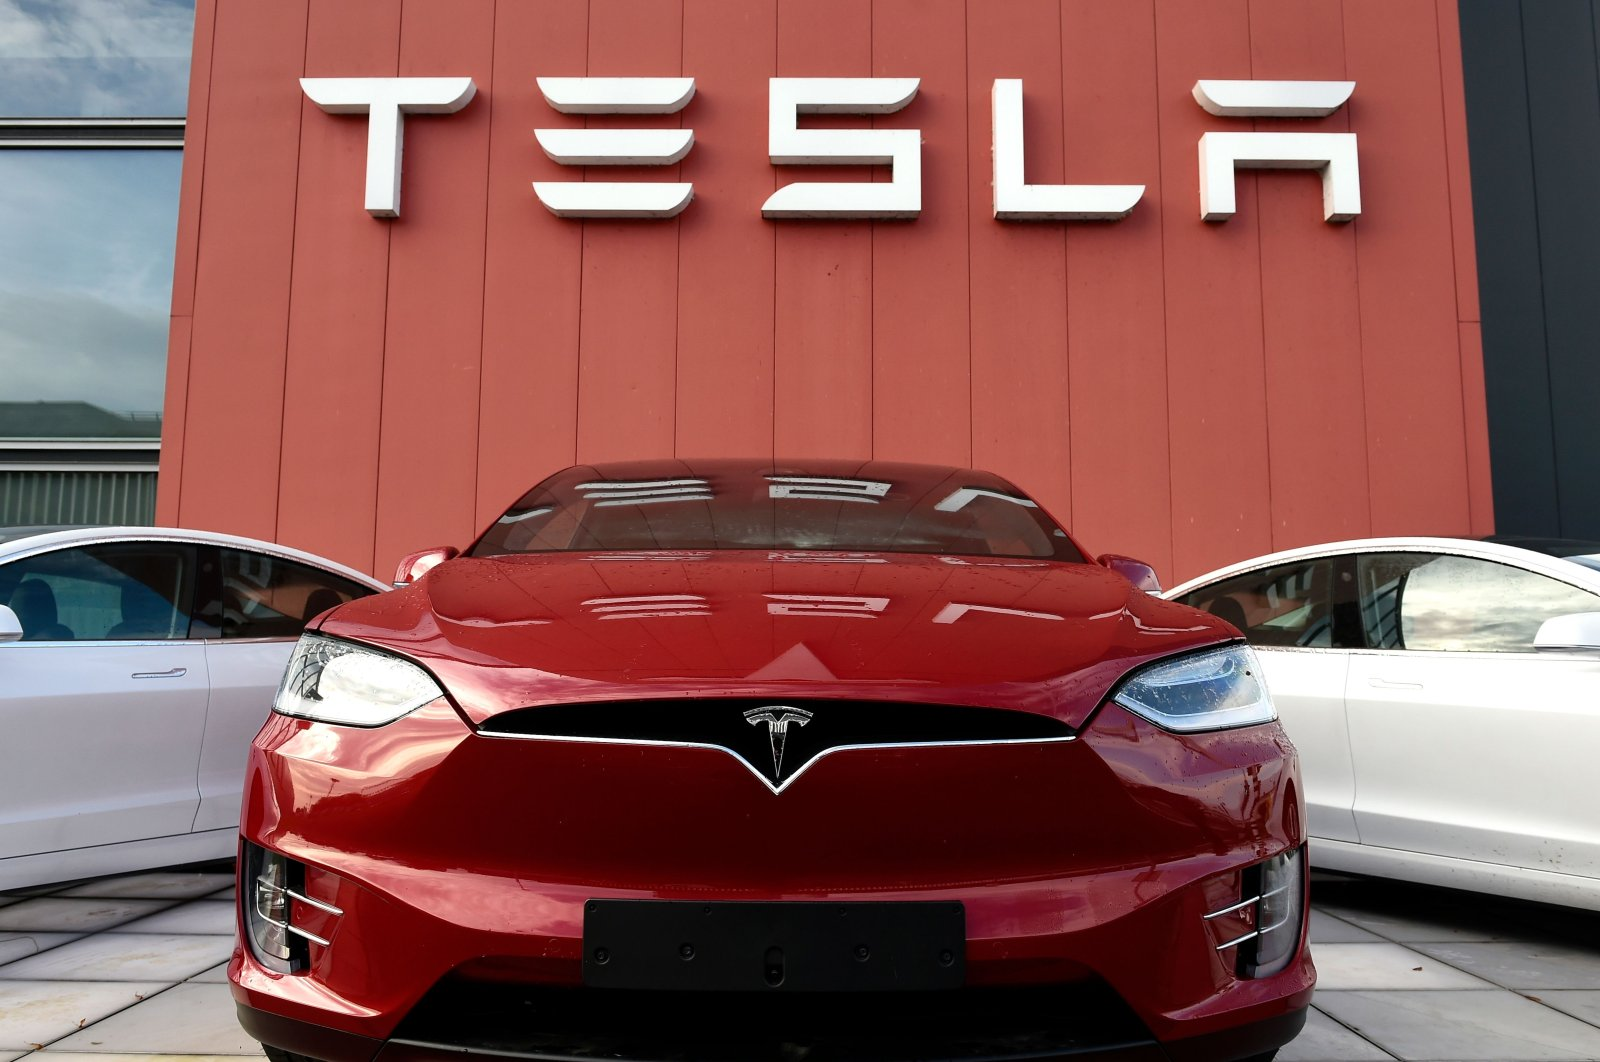 The Tesla logo marks the showroom and service center for the U.S. automotive and energy company Tesla in Amsterdam, the Netherlands, Oct. 23, 2019. (AFP Photo)